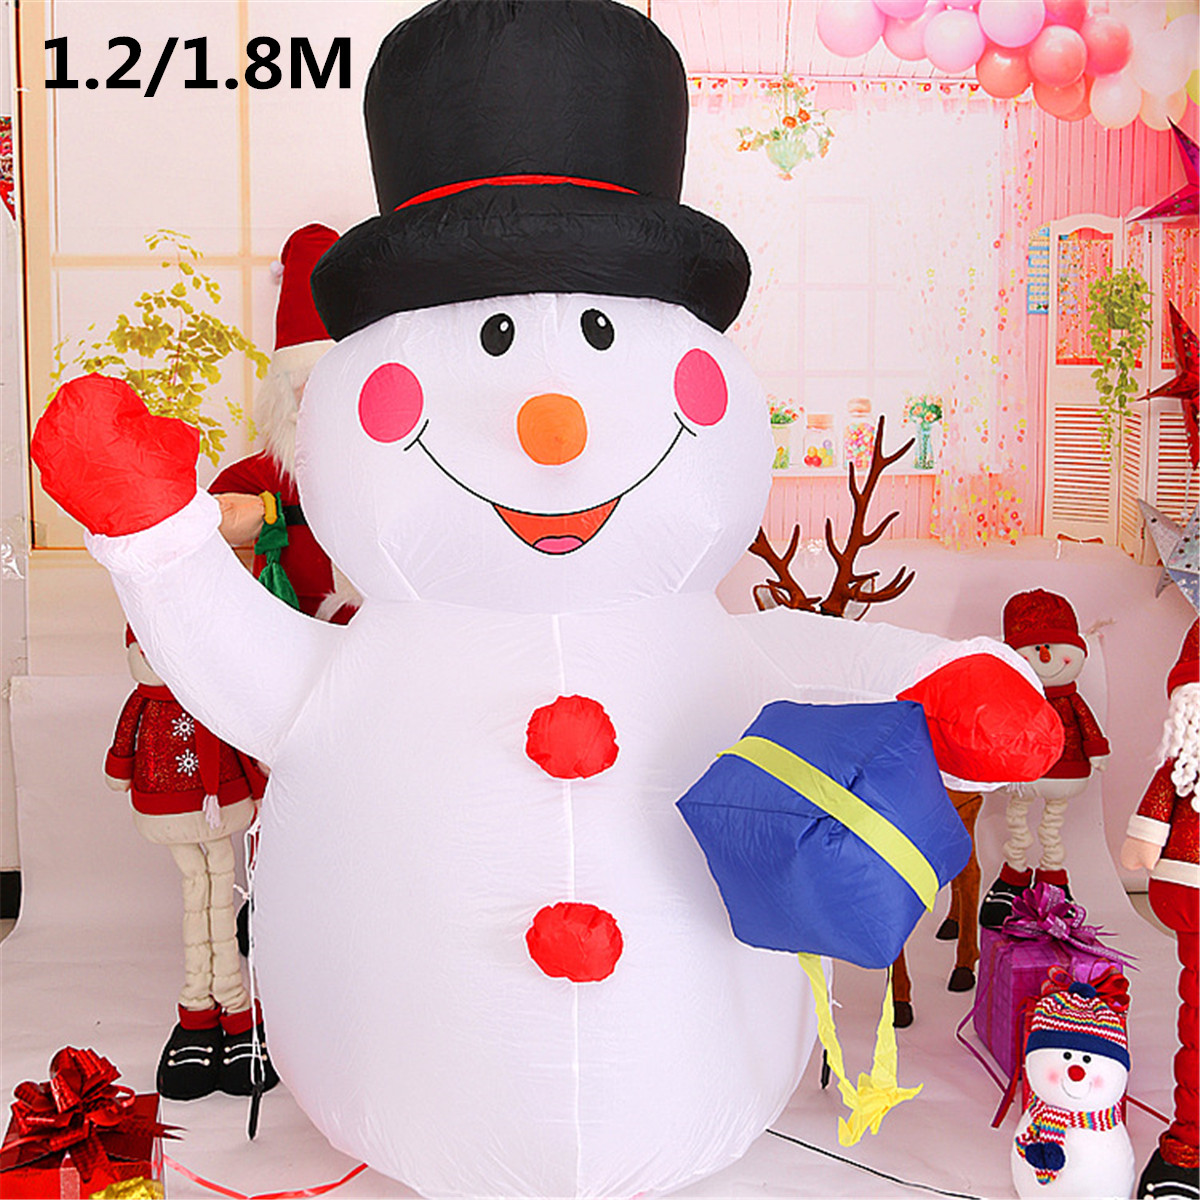 120cm/180cm LED Lights Air Inflatable Santa Claus Snowman Air Blown Christmas Holiday Lighting Christmas Birthday Party Decor santa claus holiday printed pillow case